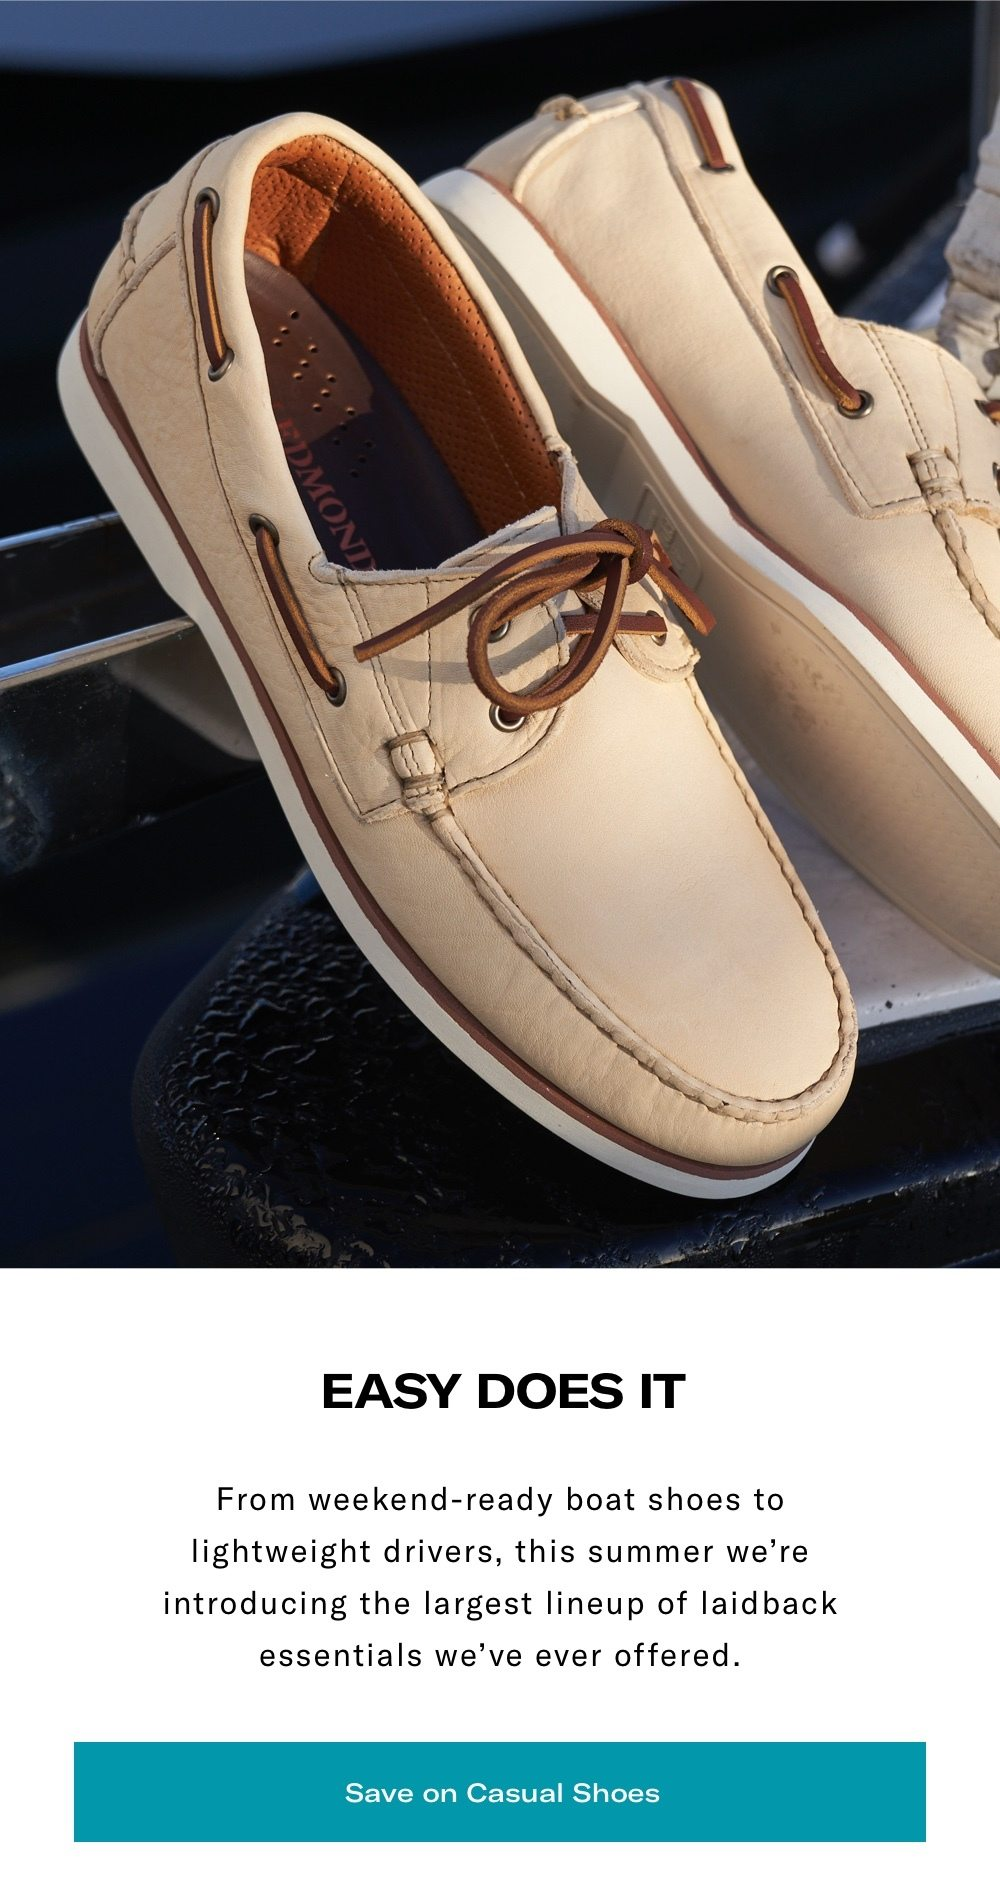 Save on Casual Shoes